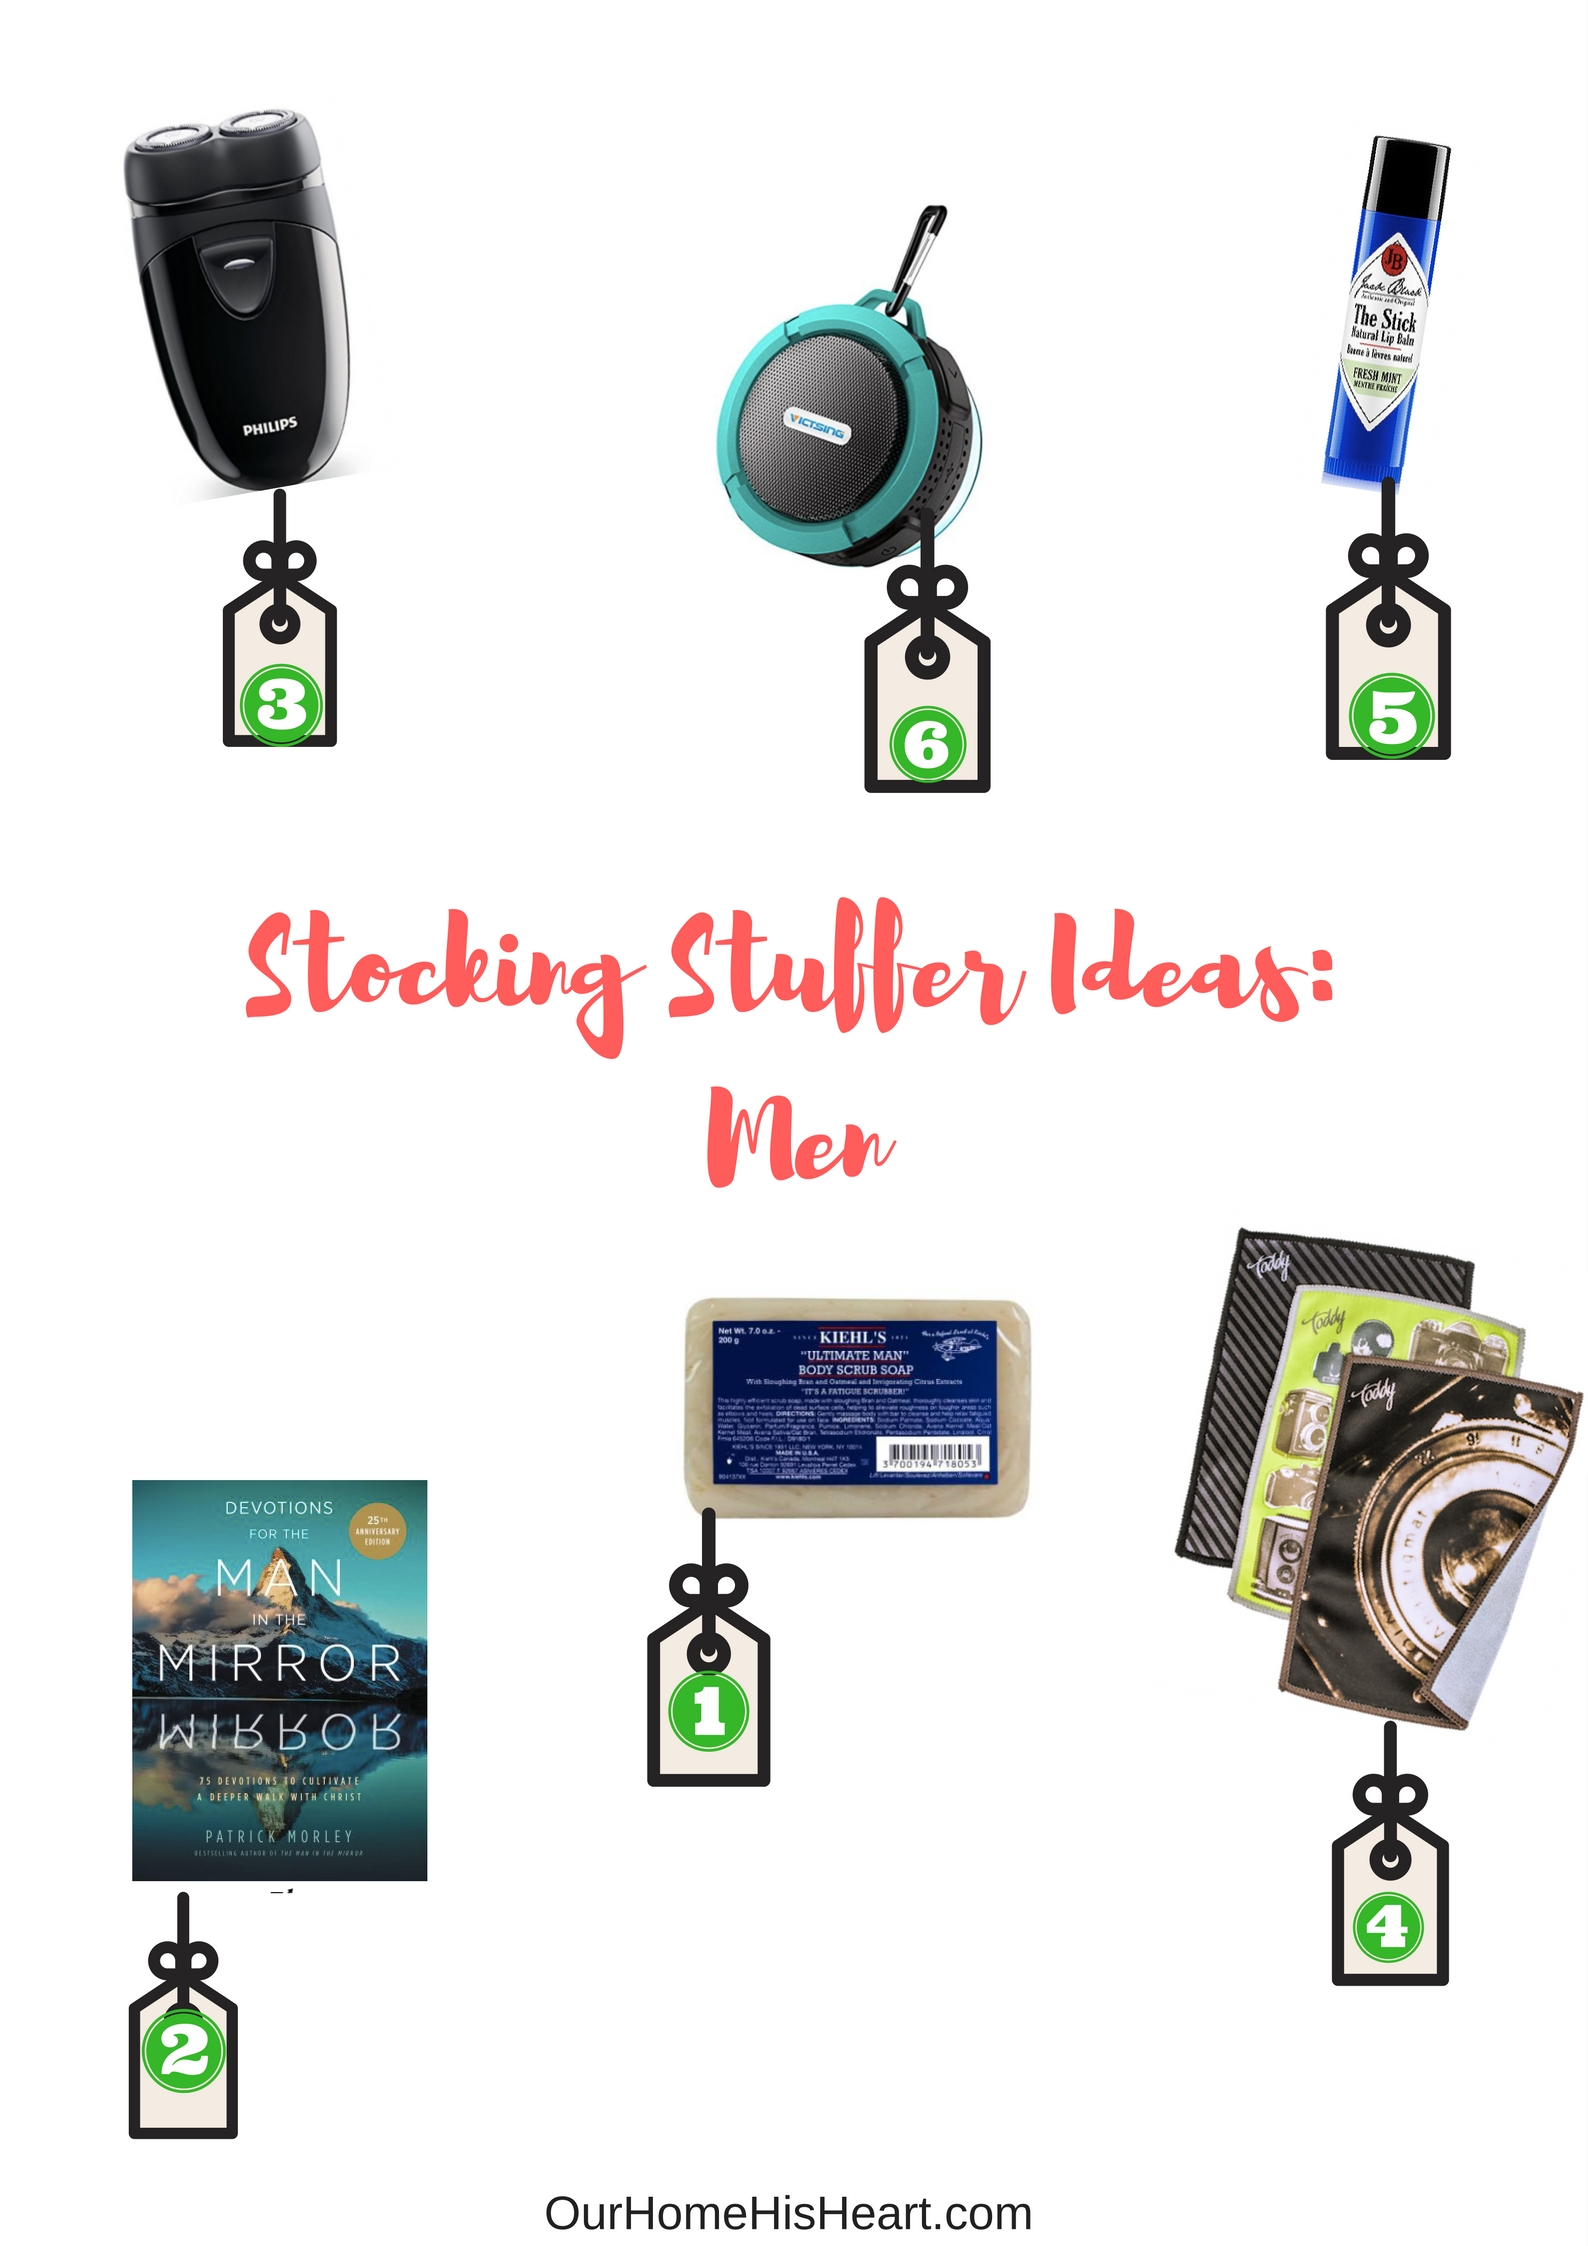 Stocking Stuffer Ideas for Men